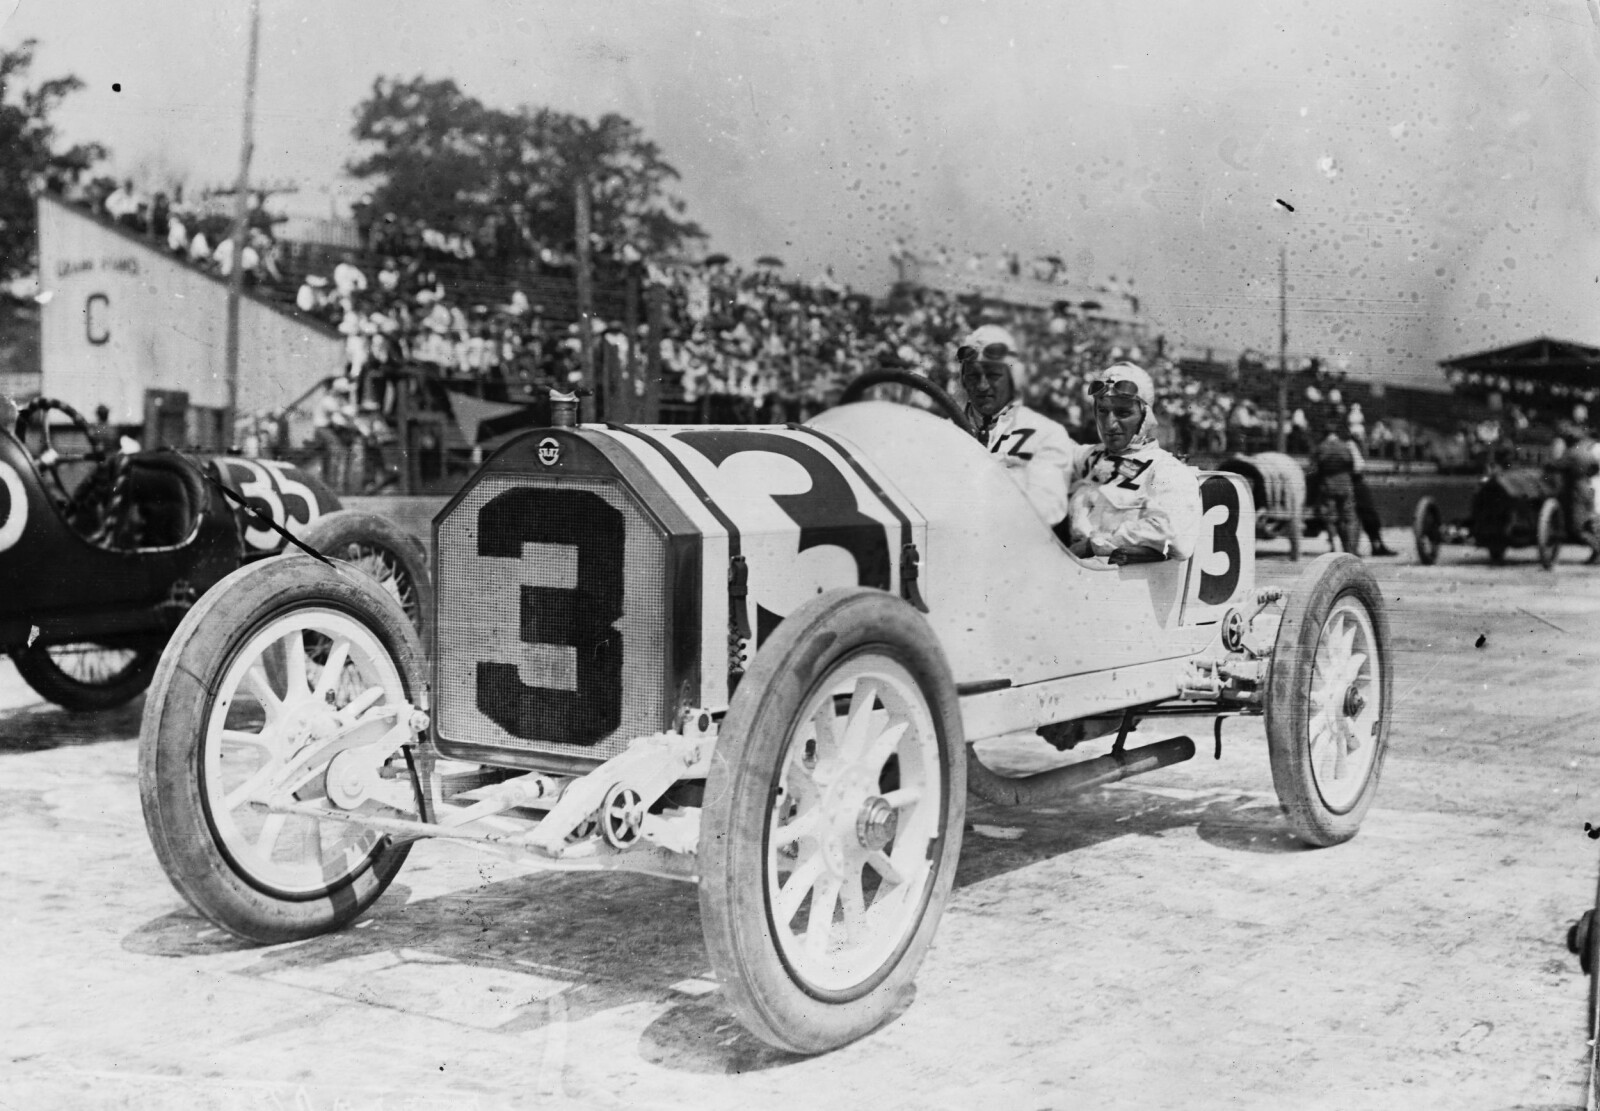 <b>INDIANAPOLIS:</b> Gil Andersen med sin mekaniker i en Stutz Bearcat-racer under Indianapolis 500 i 1913. FOTO: Topical Press/Hulton Archive/Getty Images.